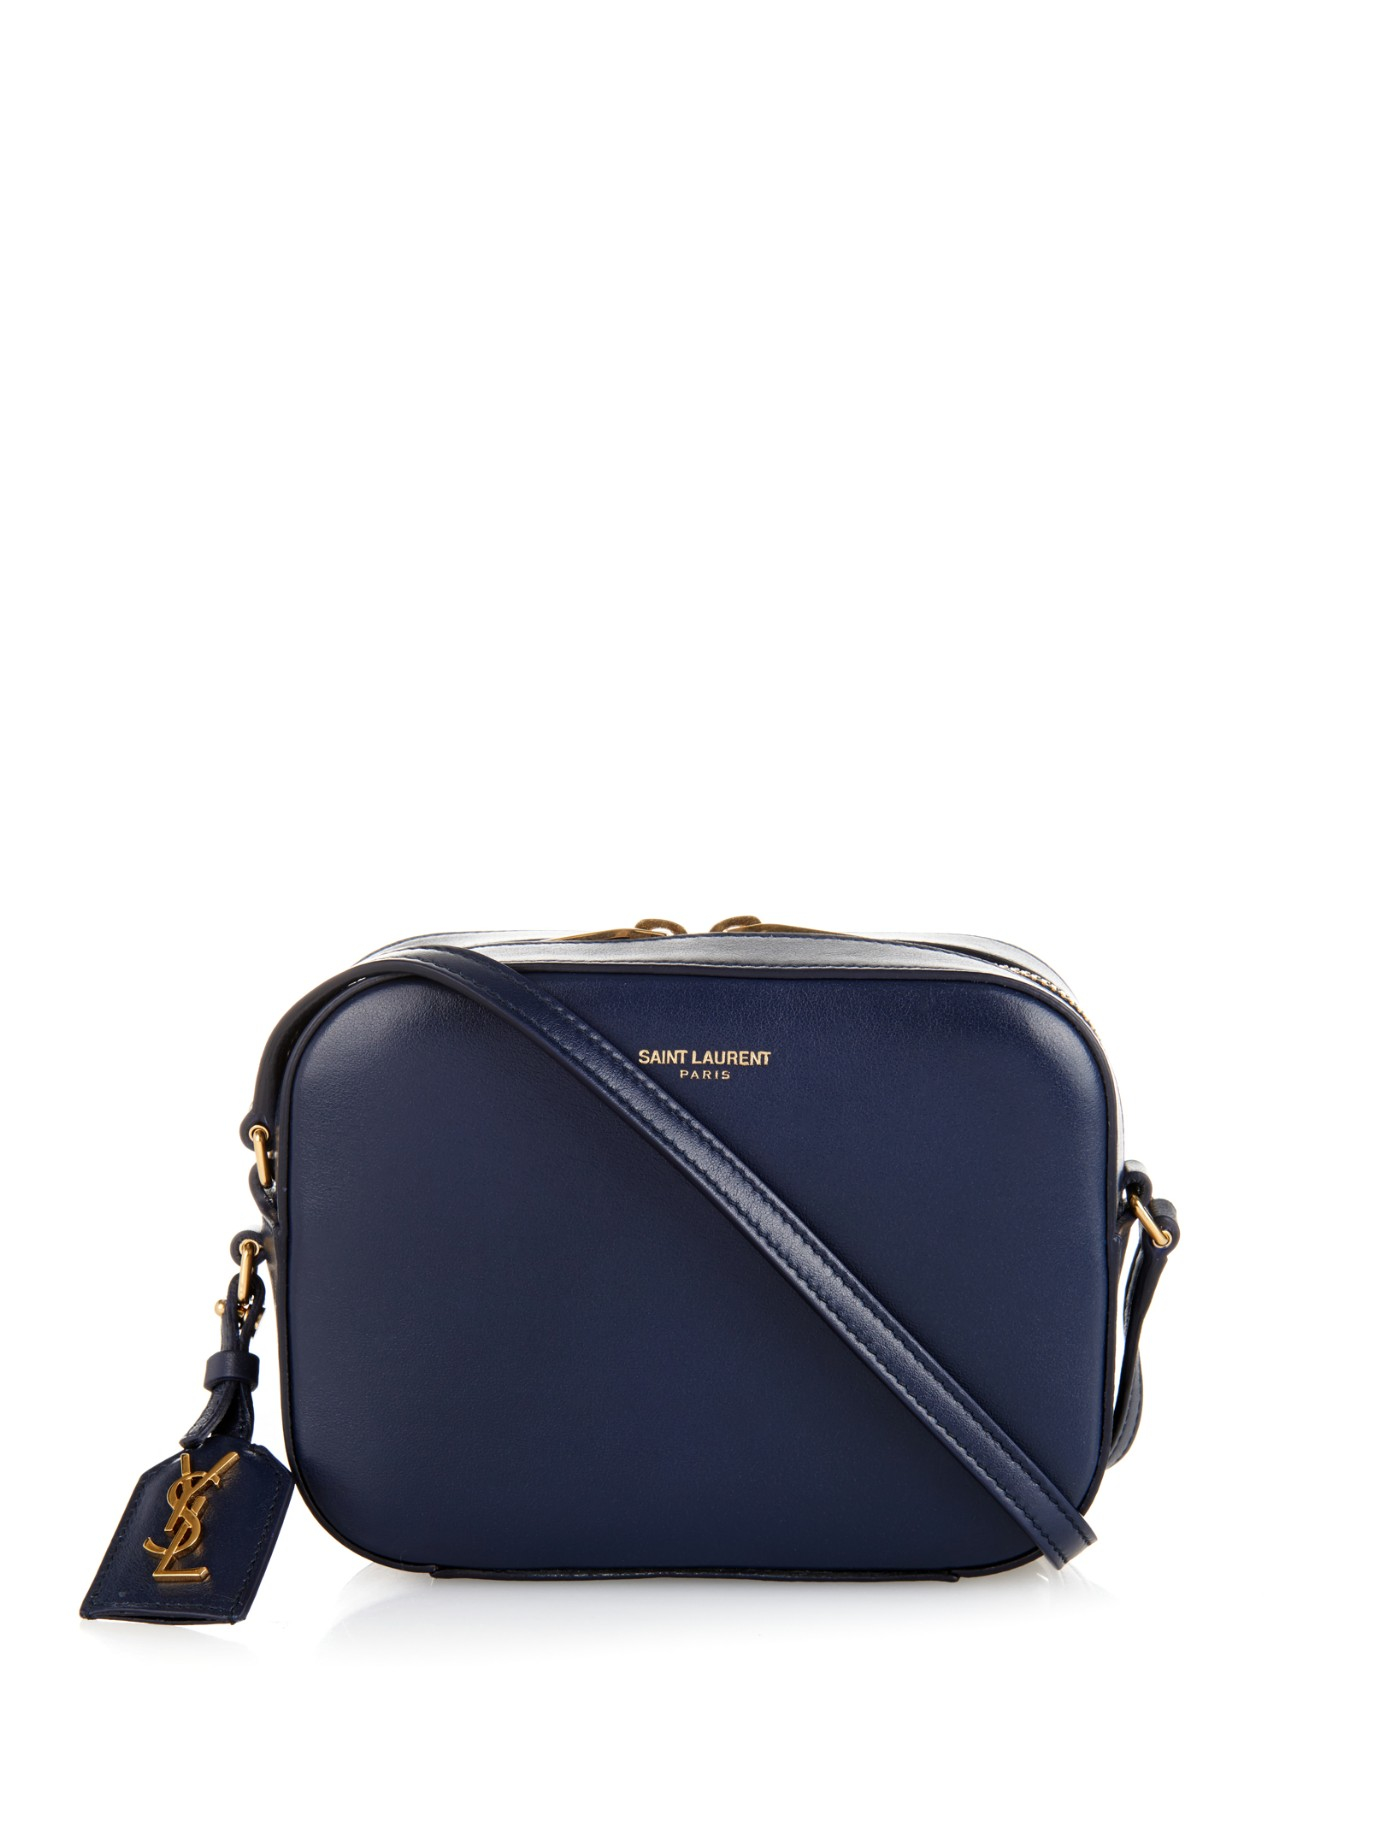 Saint Laurent Small Leather Camera Bag in Blue - Lyst 7130b2055bde6